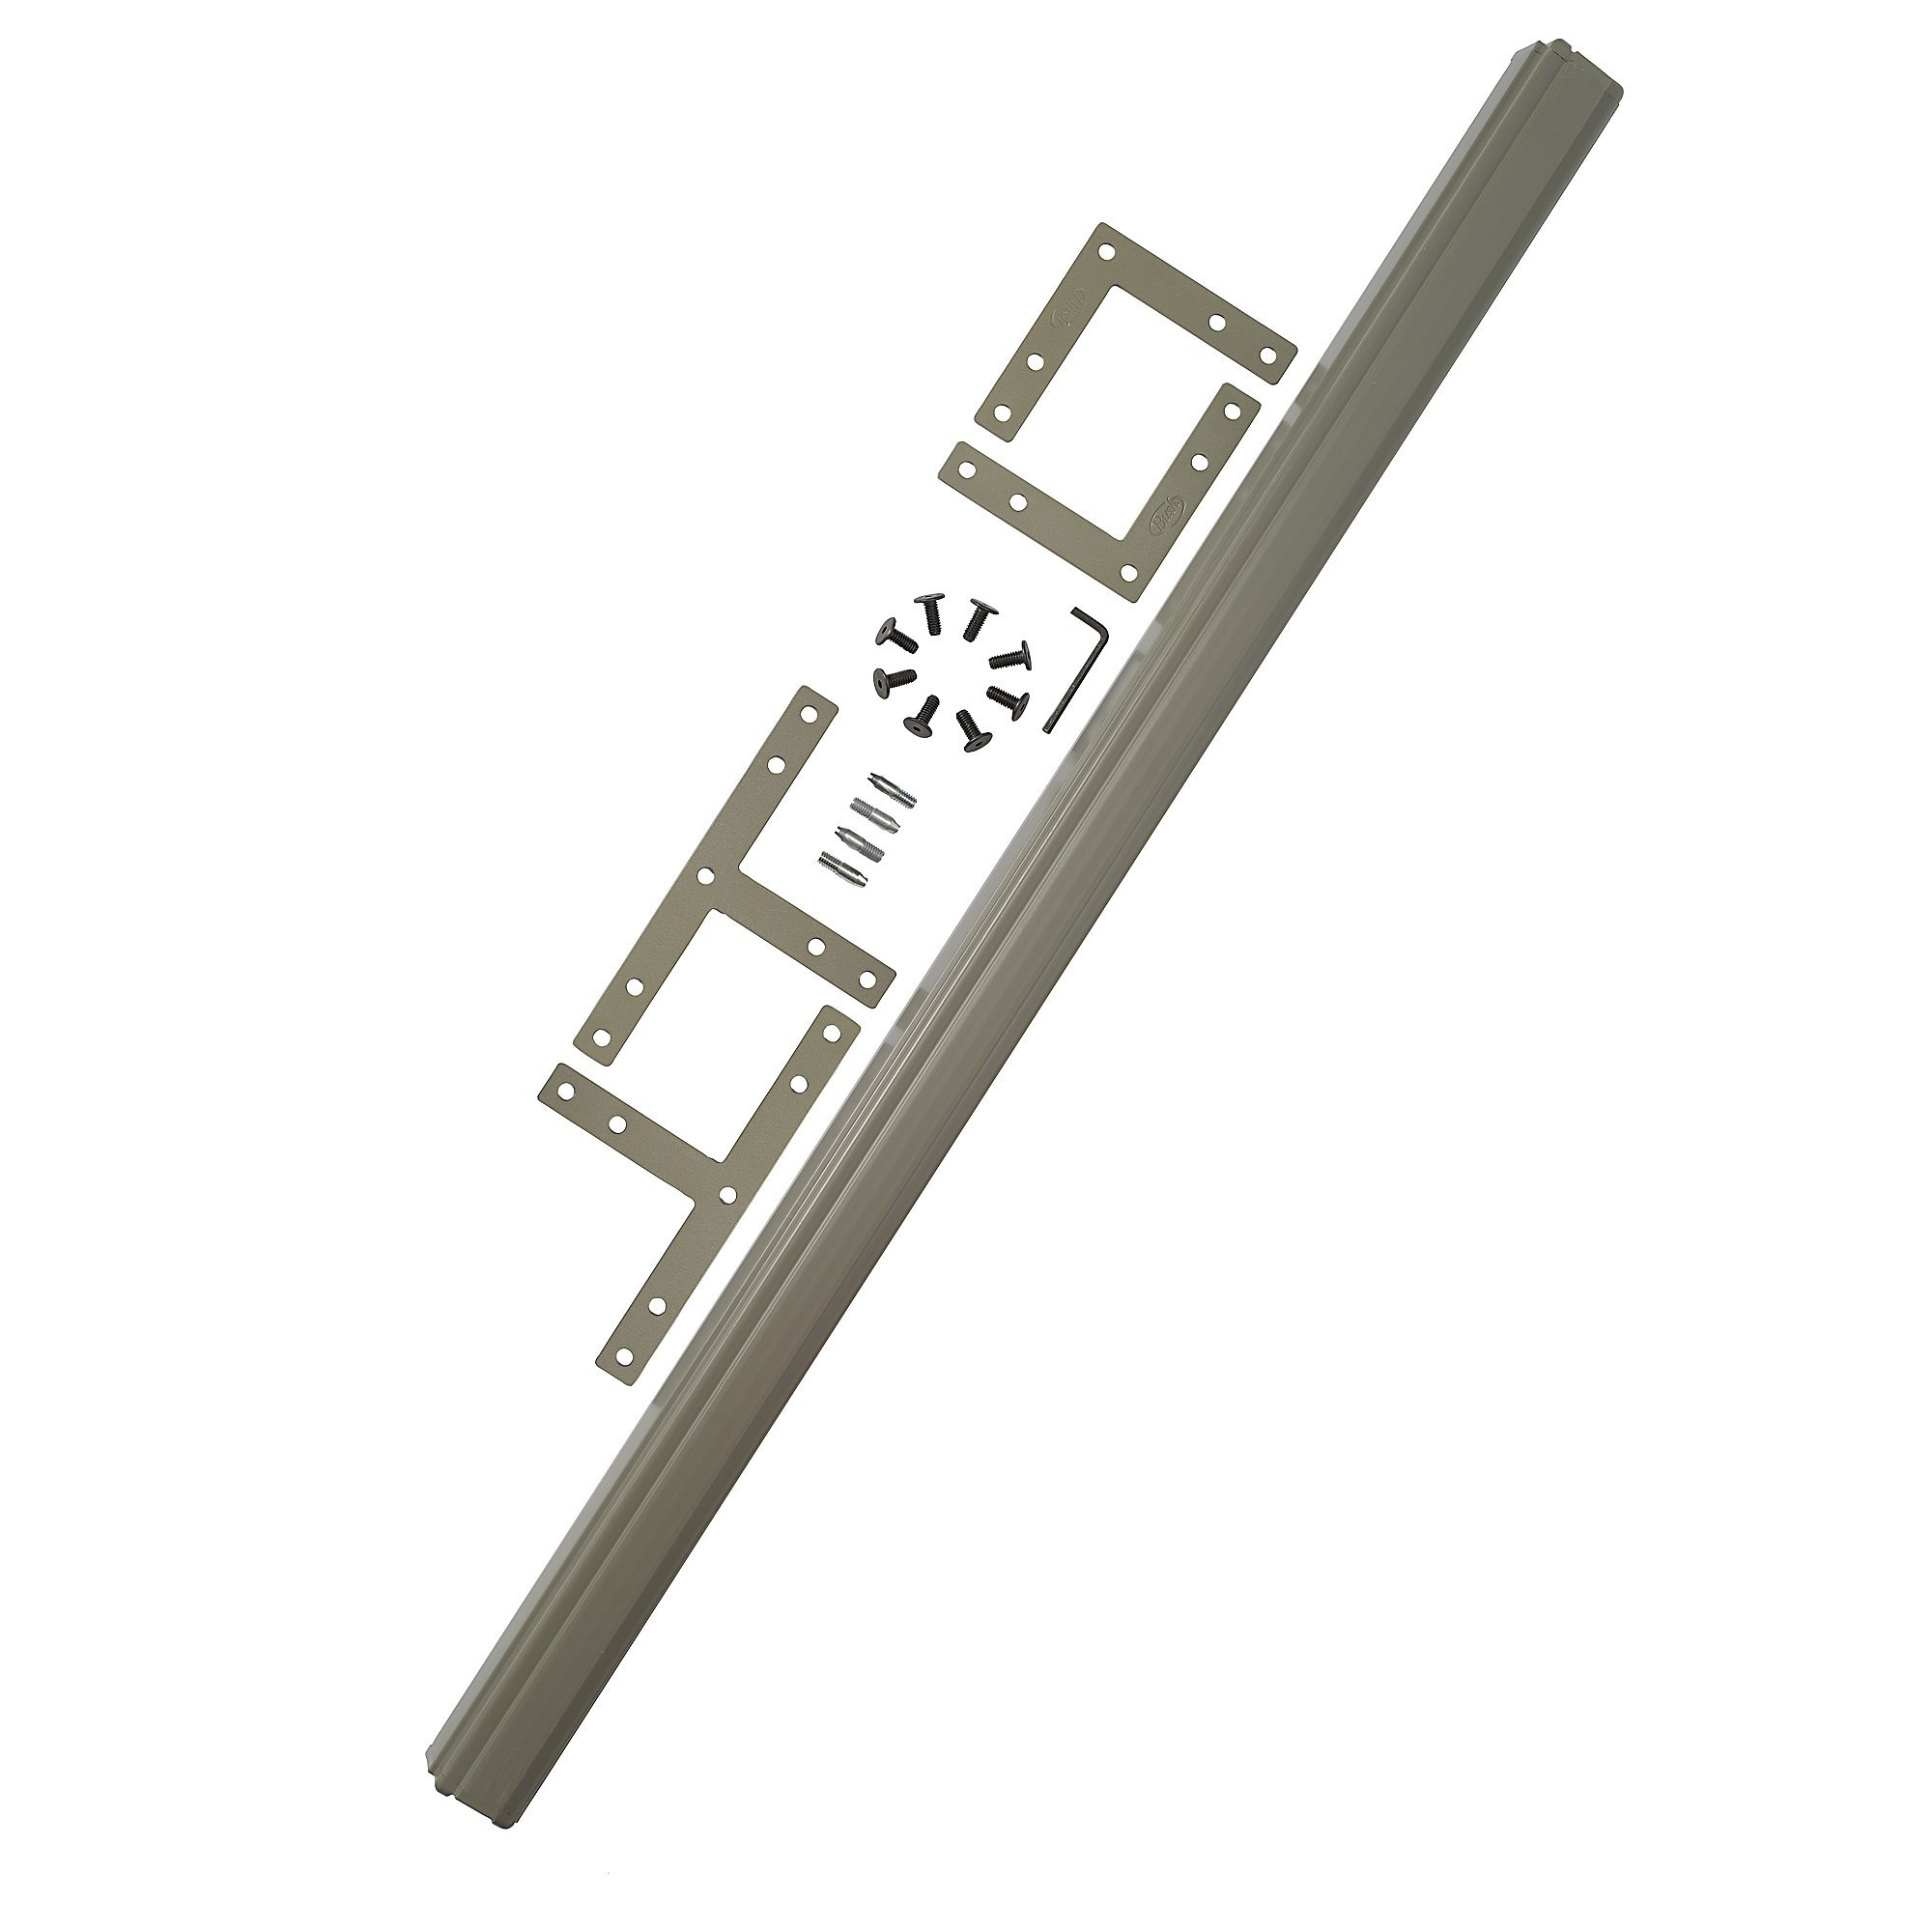 Bush Business Furniture ProPanels - 2 way or 3 way Connector (for 66H Panels) in Taupe by Bush Business Furniture